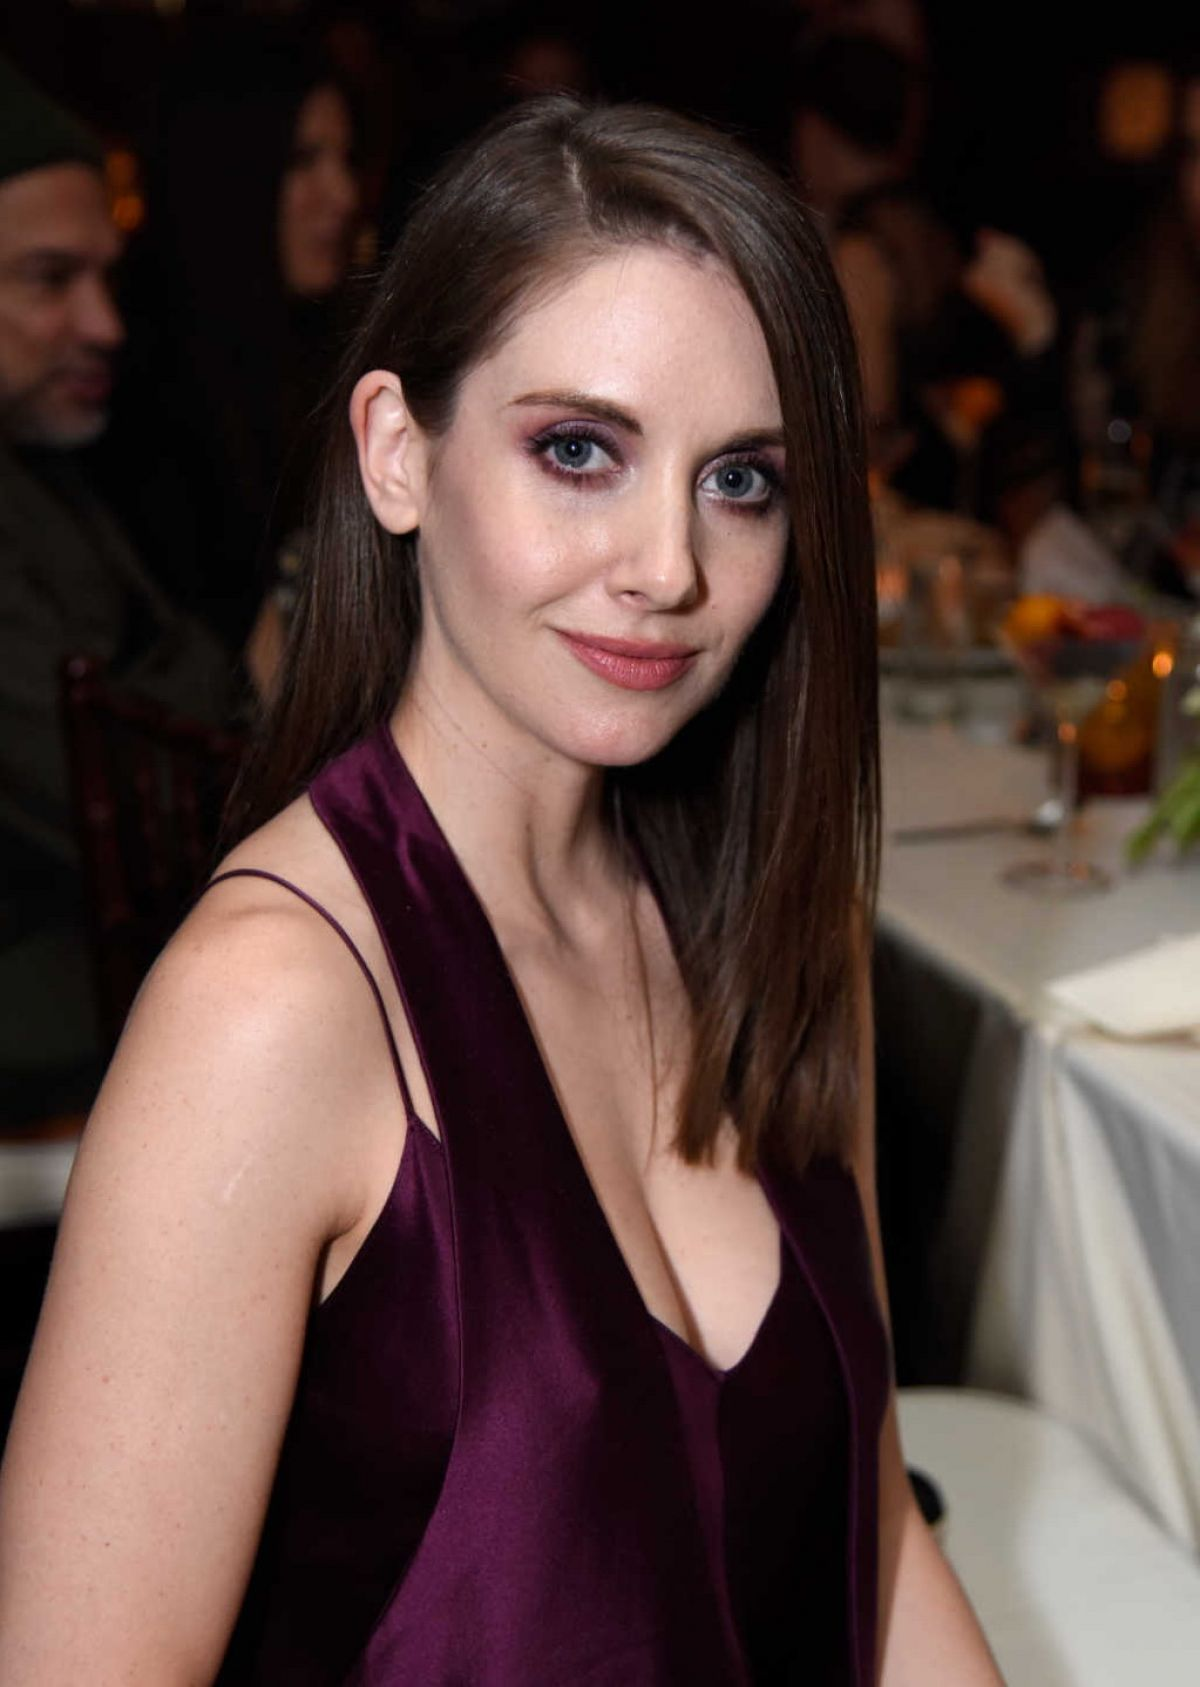 cleavage Twitter Allison Brie naked photo 2017